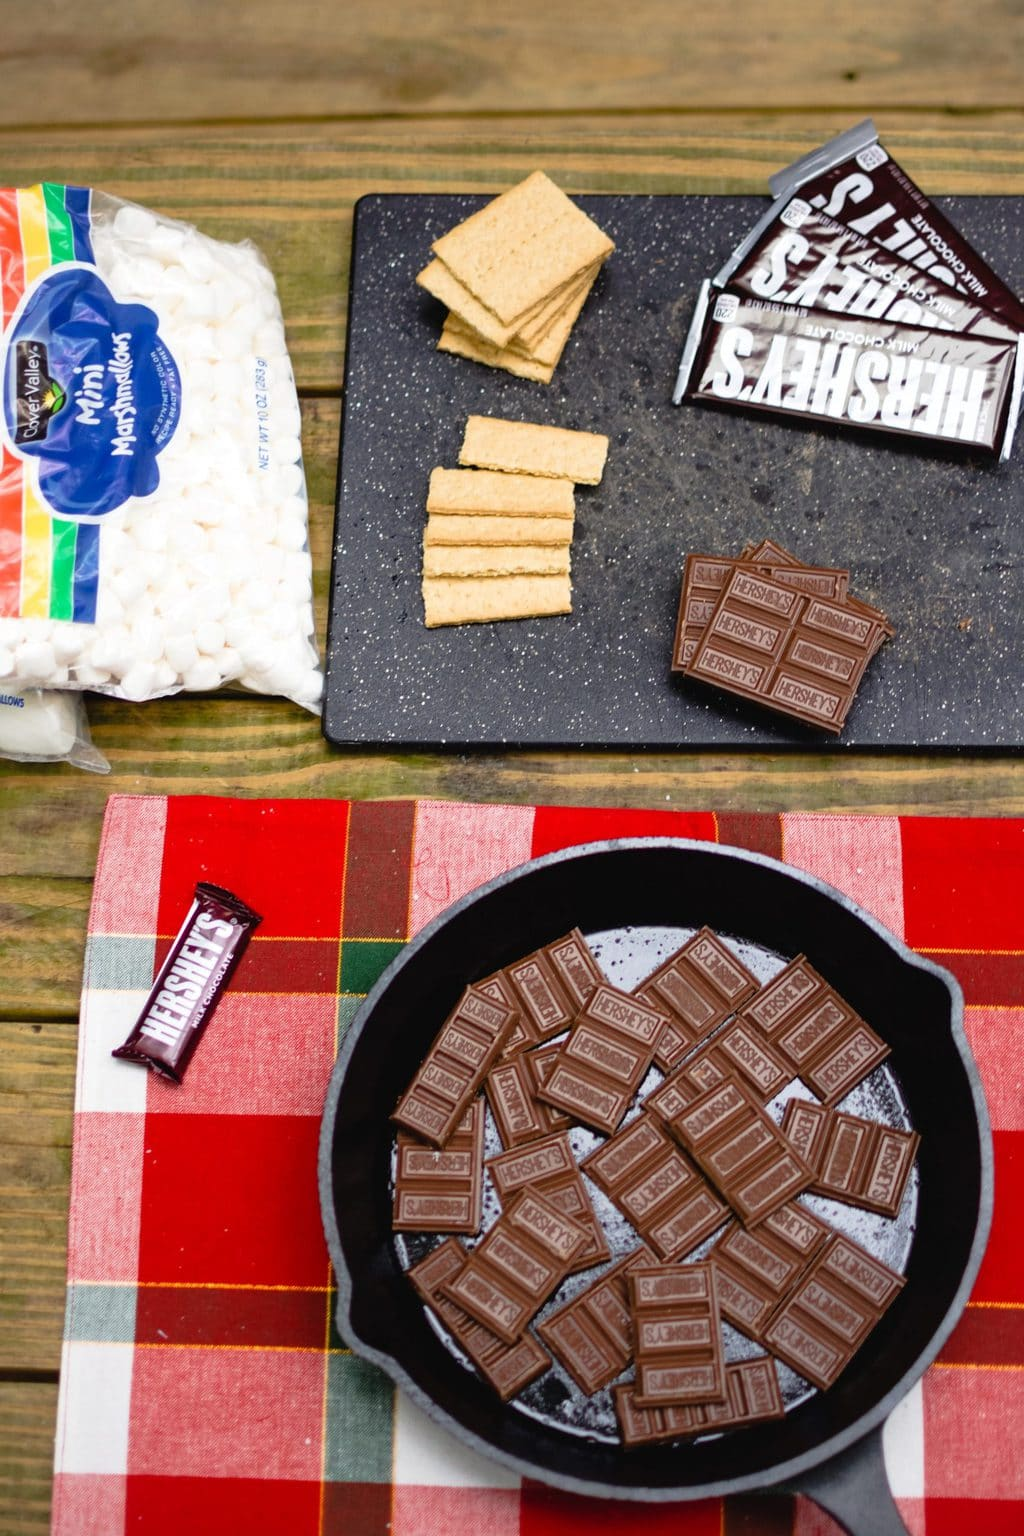 at home date ideas s'mores layout on table source: andreadavis from Pexels